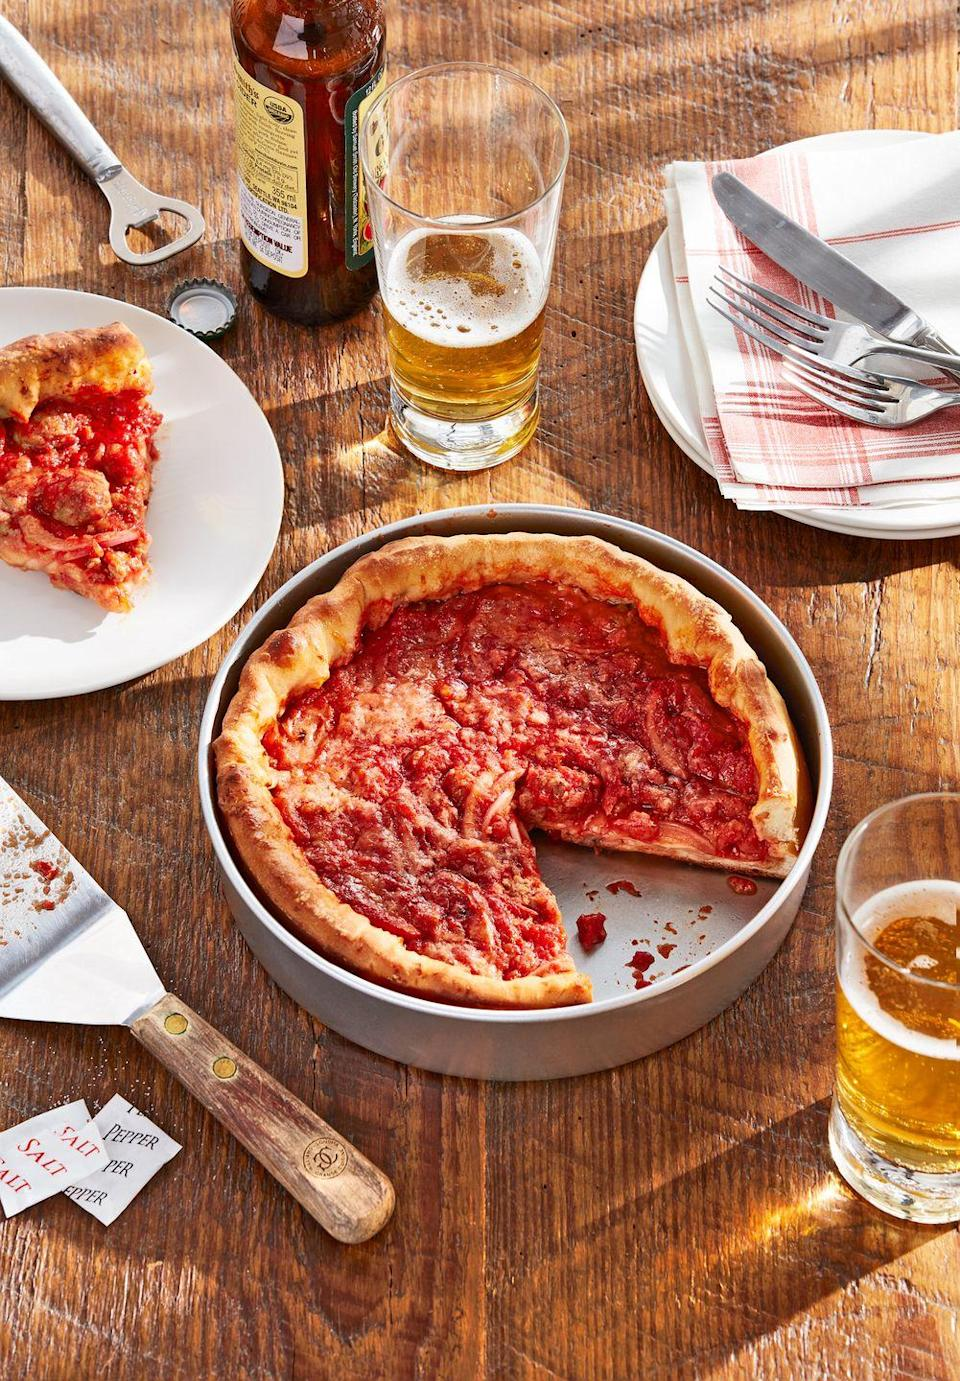 """<p>If Dad's a fan of <em>Da Bears</em>, the Blues Brothers, or any other part of the Windy City's charm, he may appreciate a homemade slice of their famed pizza. It's easier than you think!</p><p><strong><a href=""""https://www.countryliving.com/food-drinks/a35856123/chicago-deep-dish-pizza-recipe/"""" rel=""""nofollow noopener"""" target=""""_blank"""" data-ylk=""""slk:Get the recipe"""" class=""""link rapid-noclick-resp"""">Get the recipe</a>.</strong></p>"""